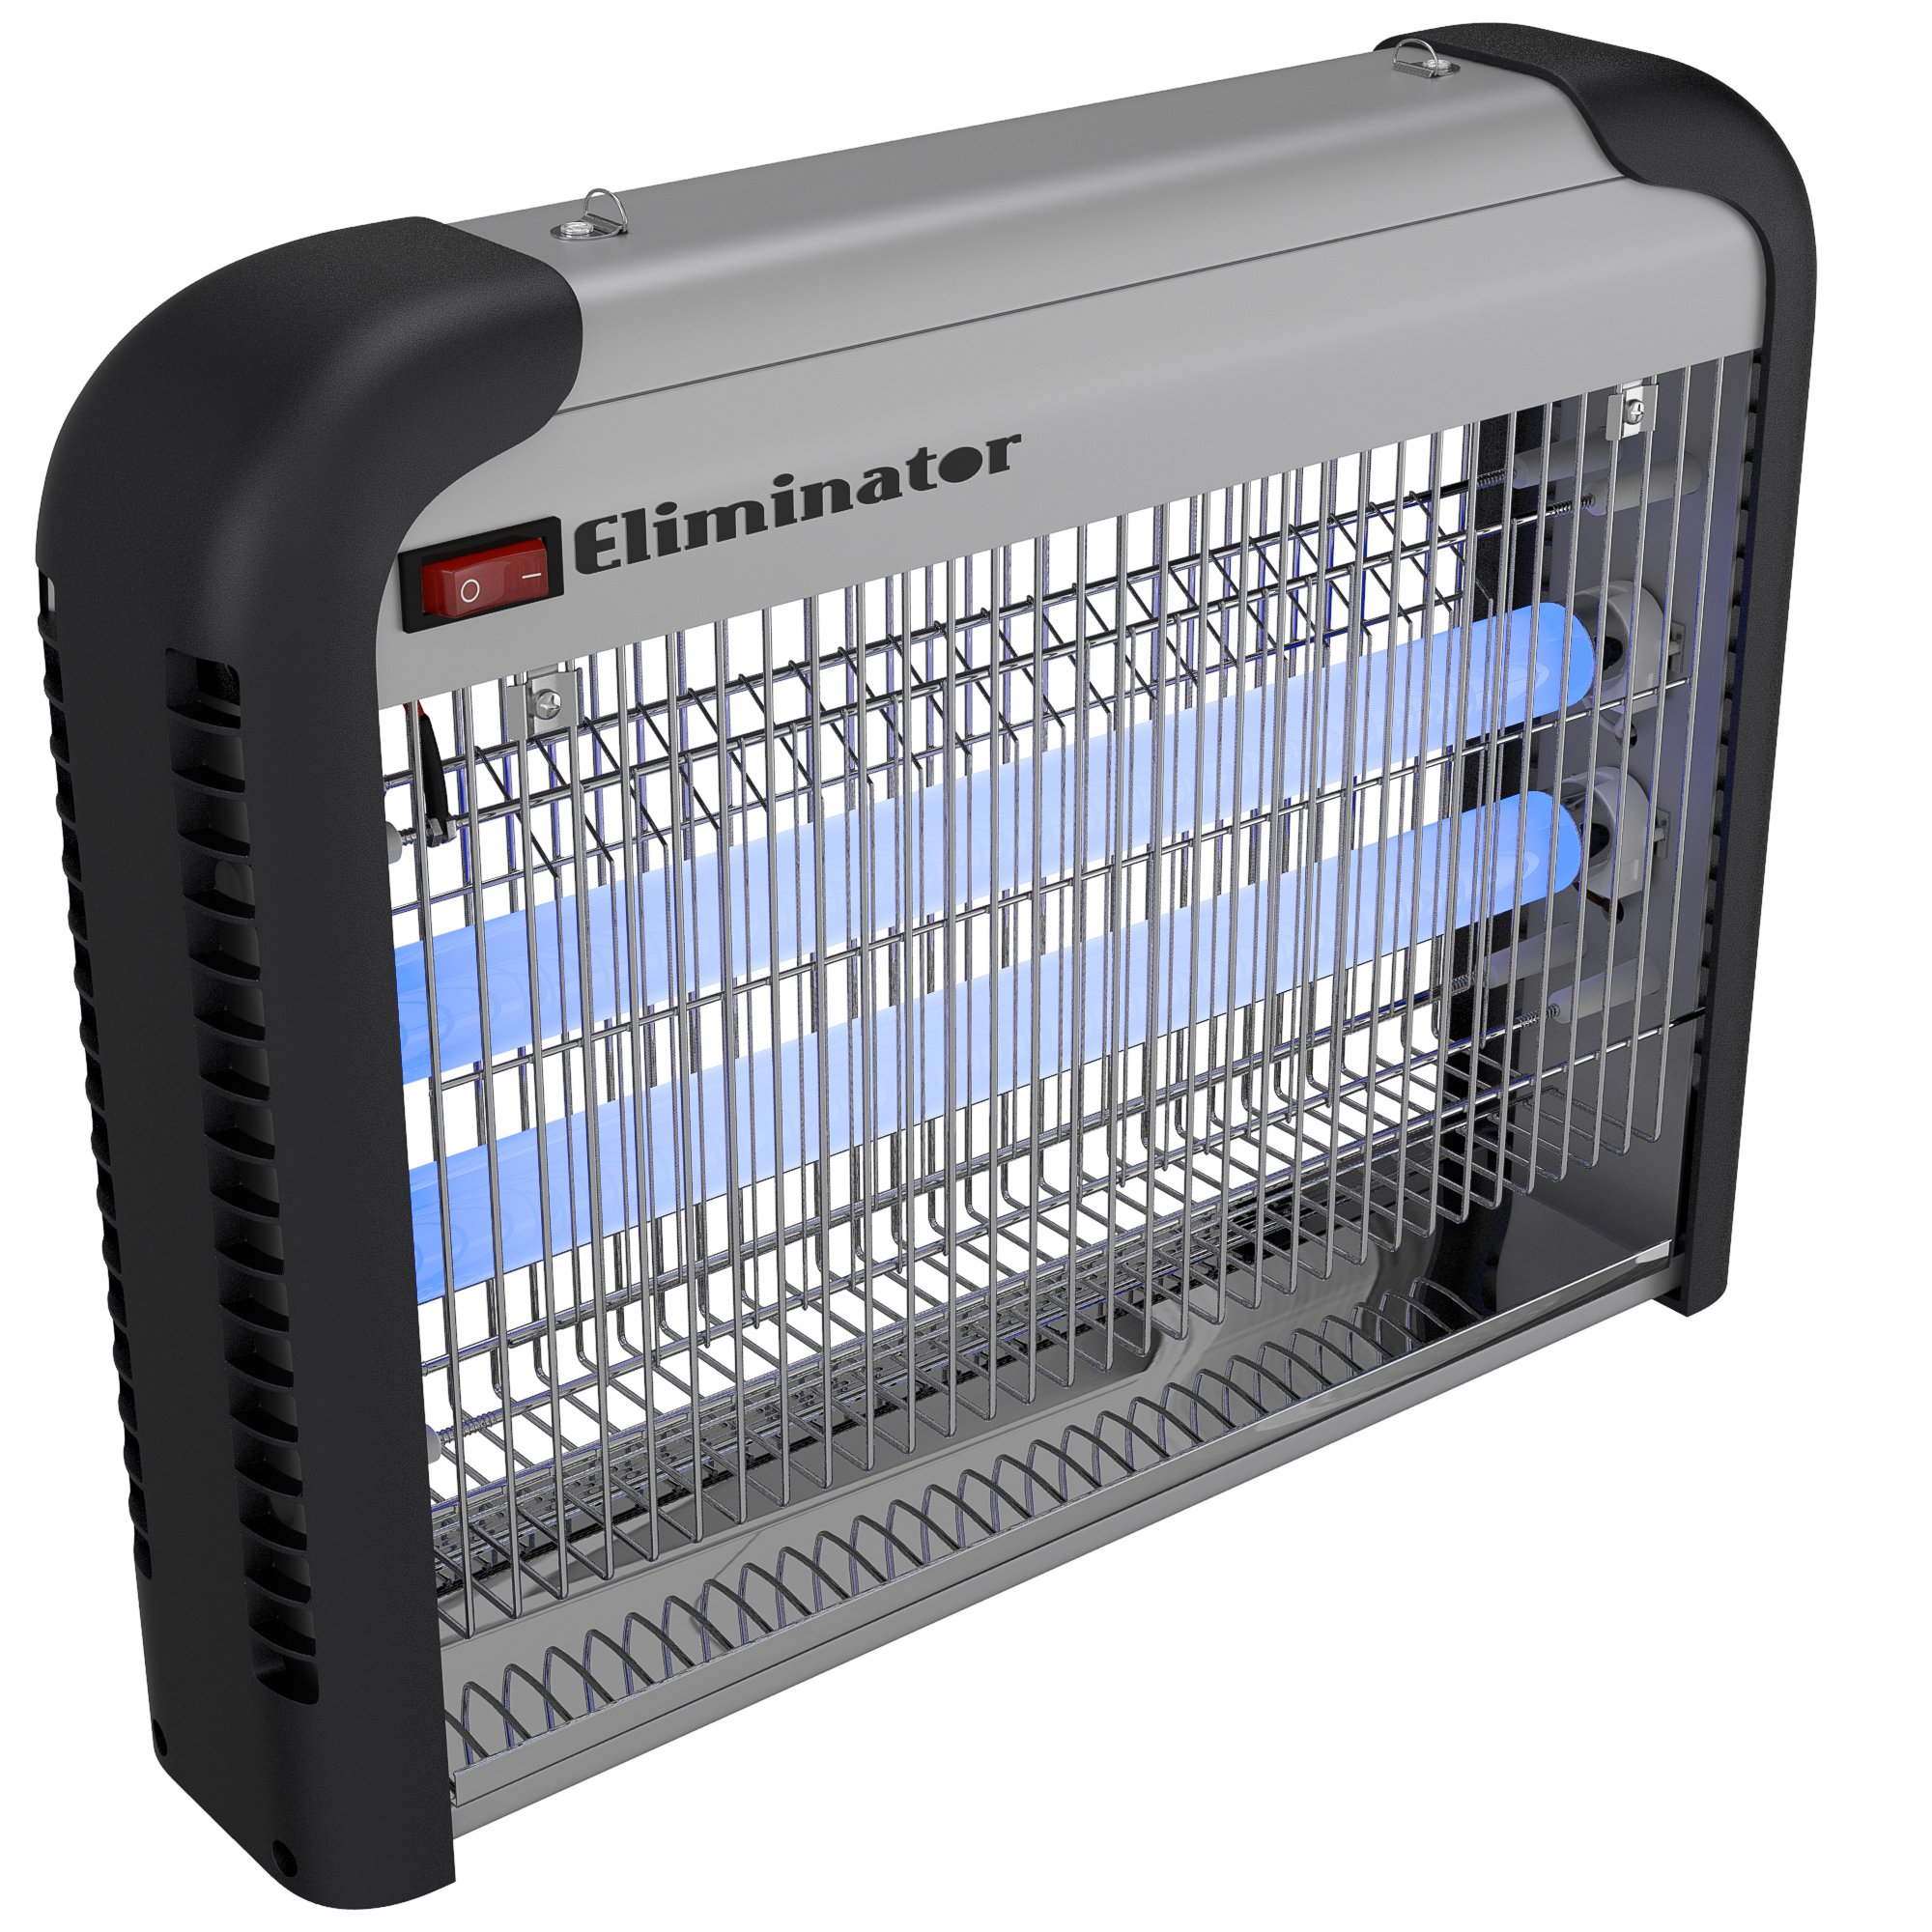 Eliminator Electronic Fly and Bug Zapper – 20 Watts, Protects 5,000 Sq. Ft. / Exterminates All Insect Pests - For Residential, Industrial and Commercial Use by Eliminator (Image #5)